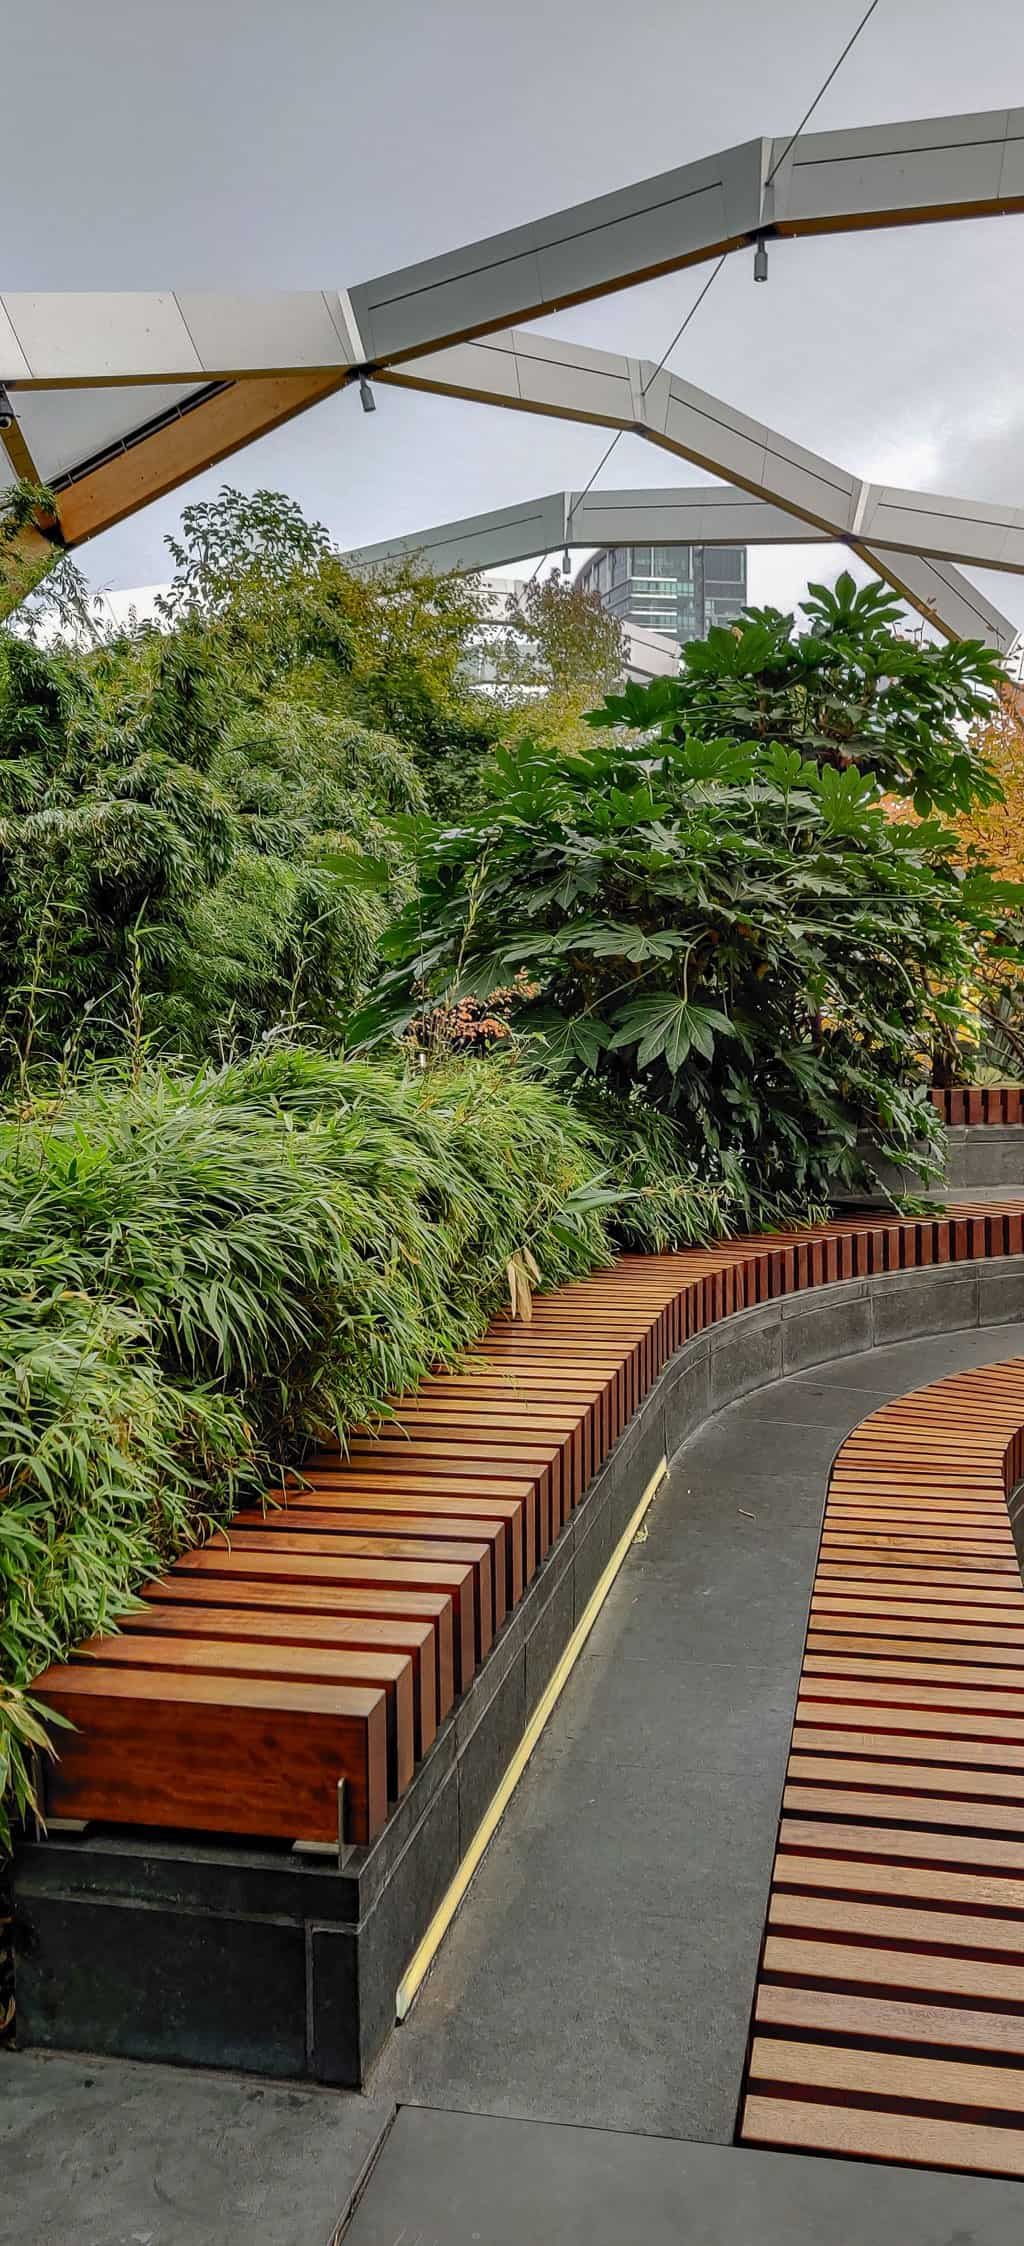 Visiting the Crossrail Place Garden is one of the things to do in Canary Wharf